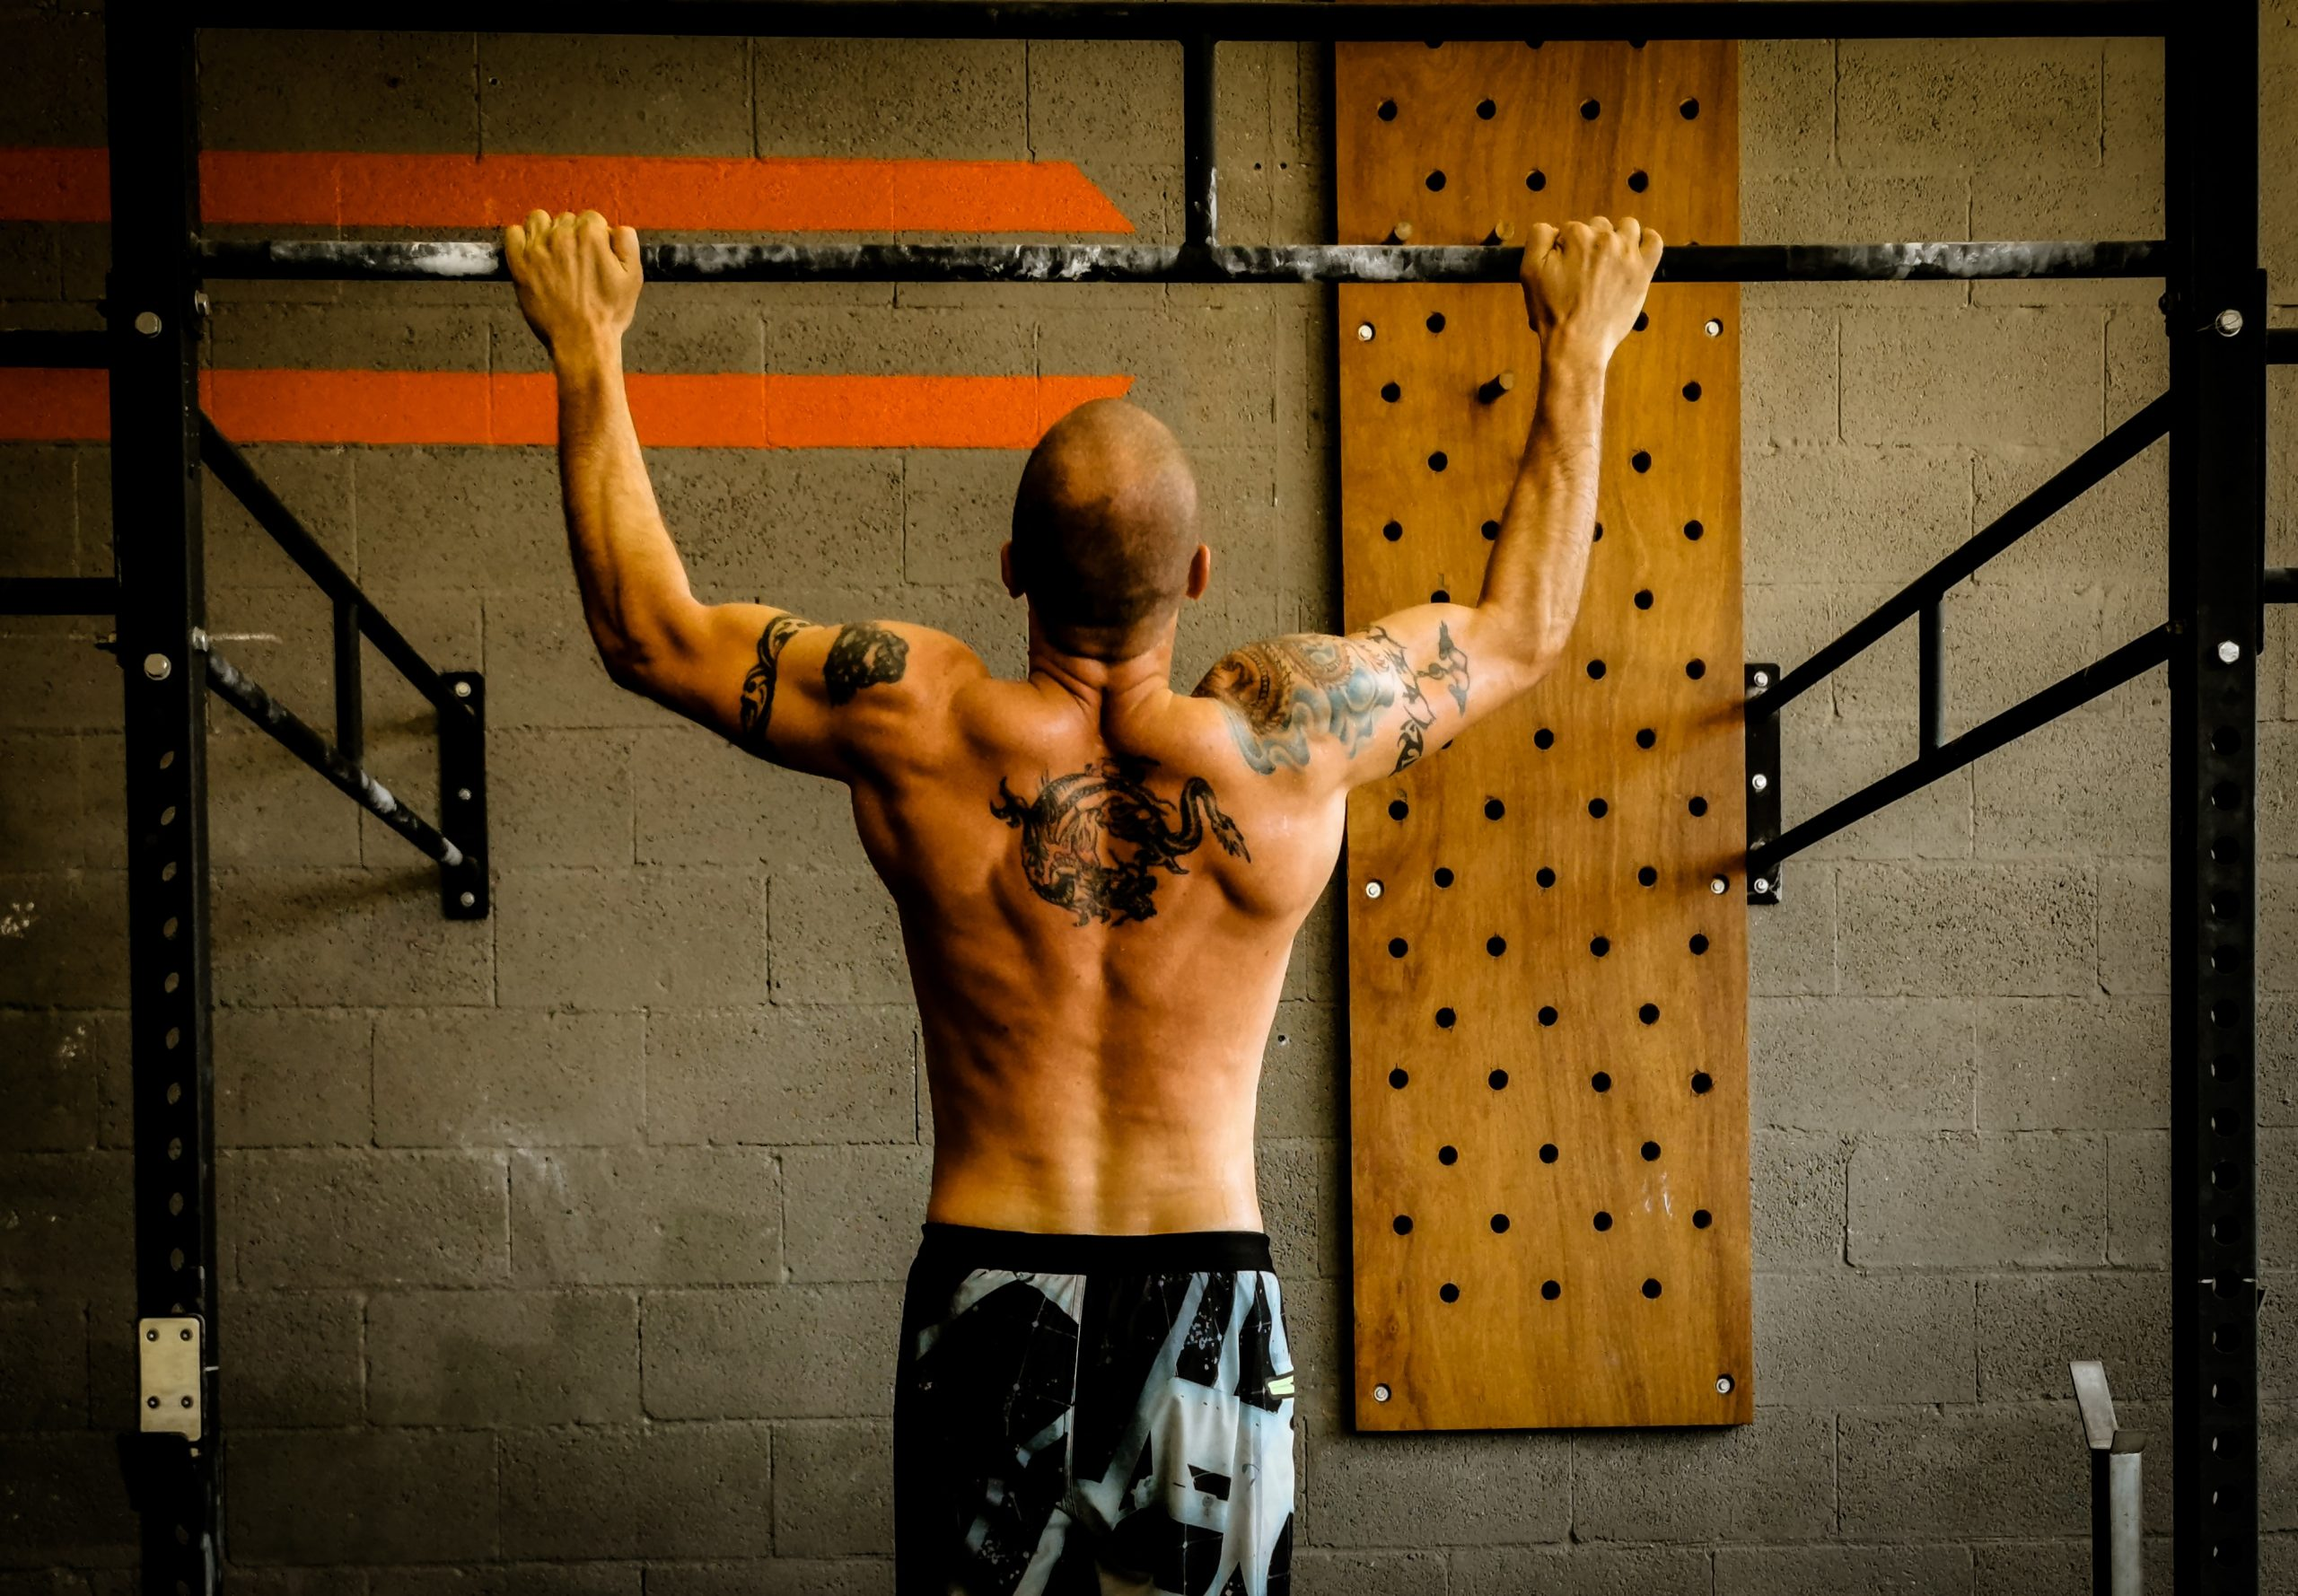 Prisoner workout prisoner pull up bar